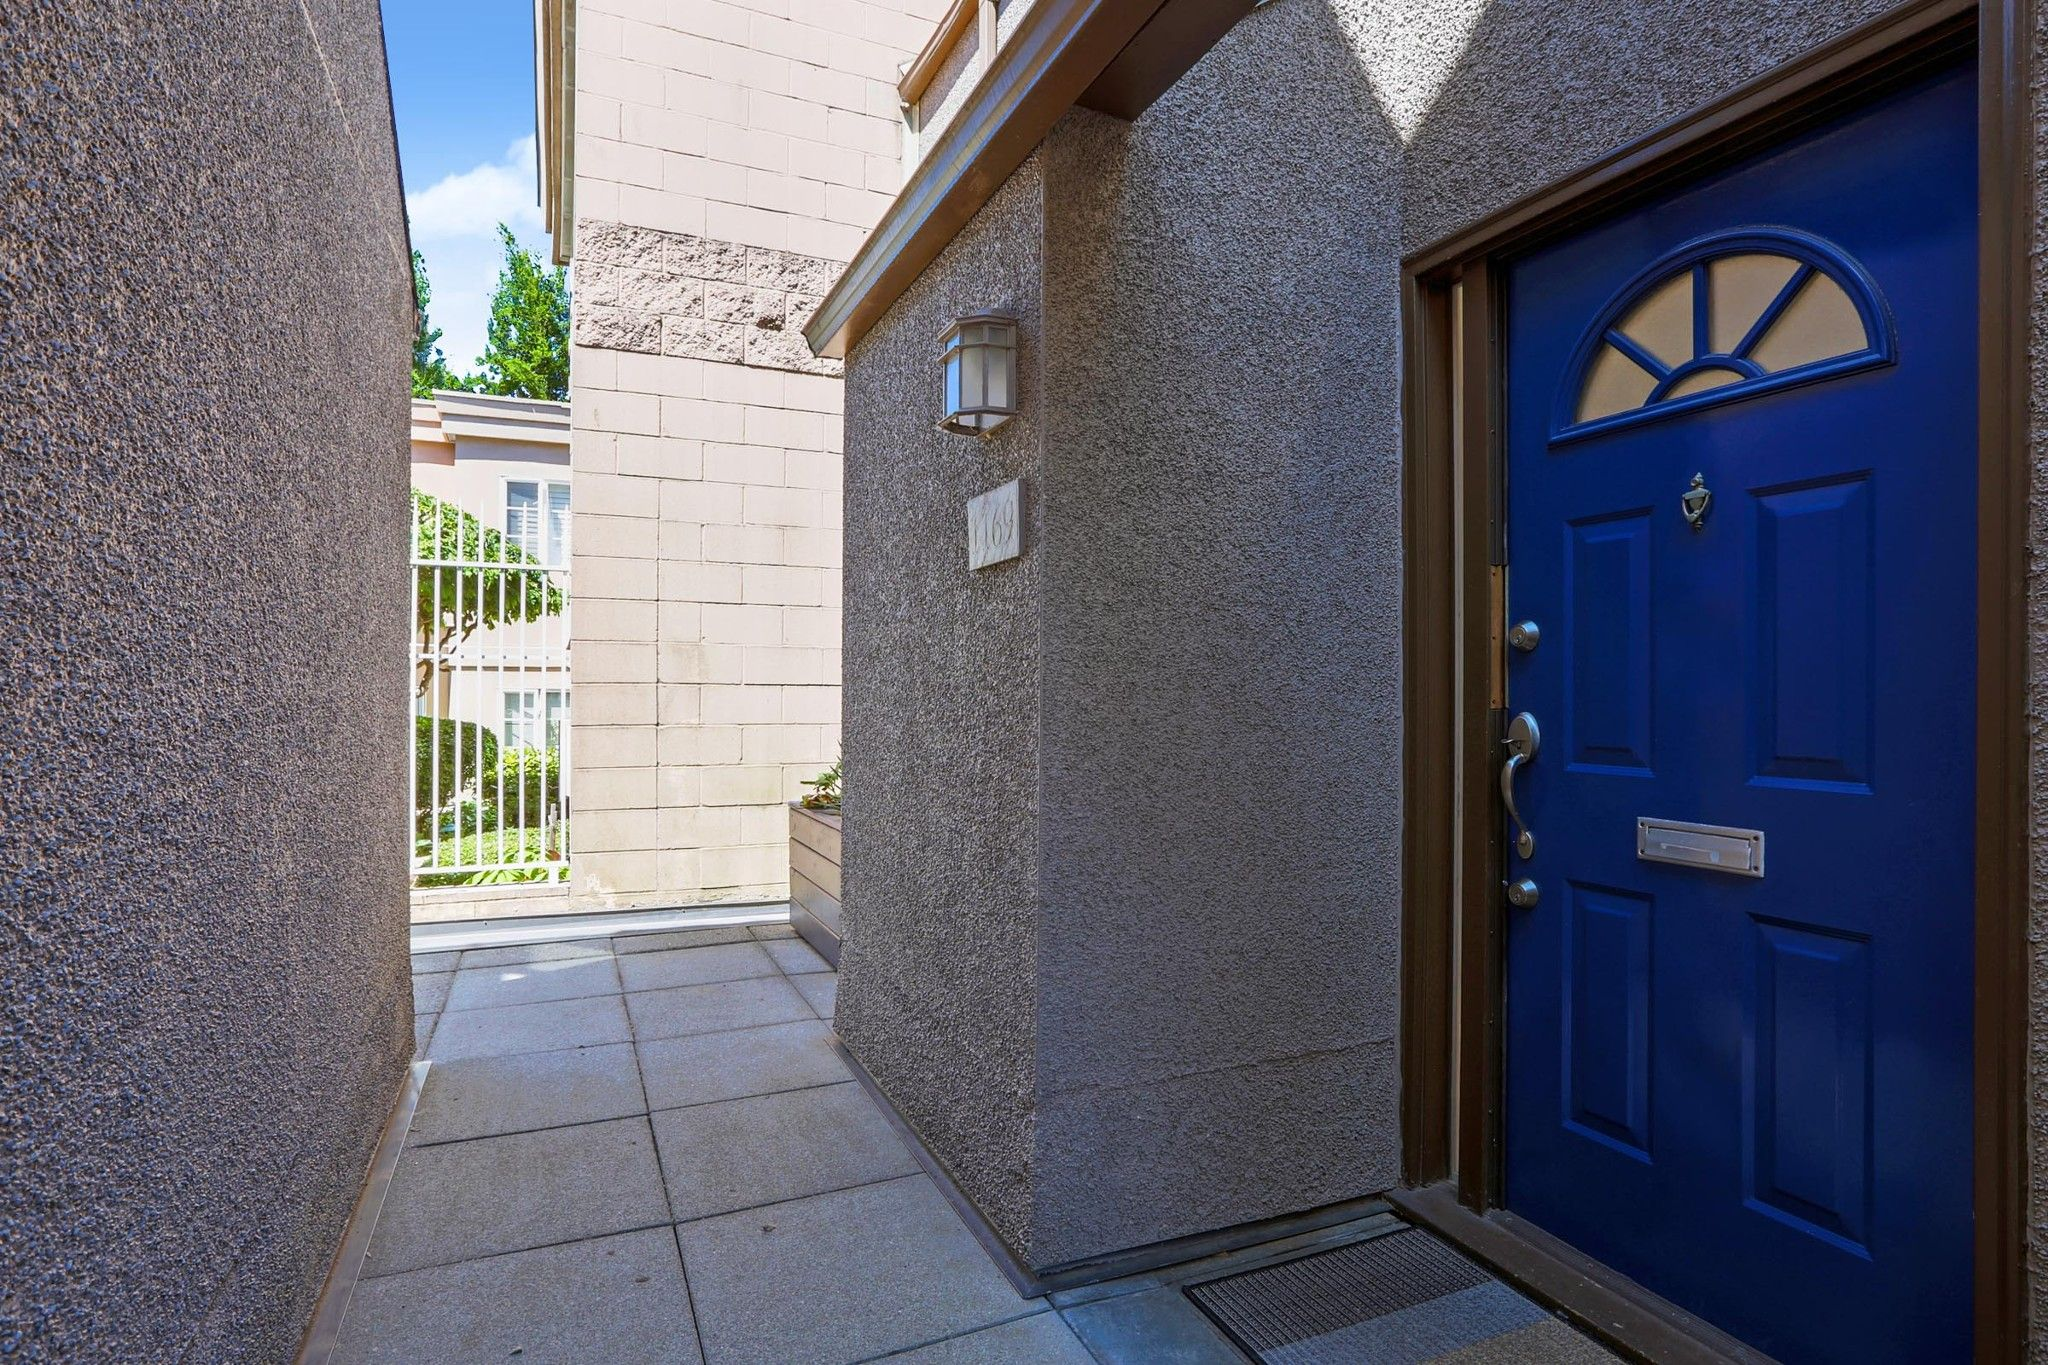 """Main Photo: 1169 W 8TH Avenue in Vancouver: Fairview VW Townhouse for sale in """"Fairview 2"""" (Vancouver West)  : MLS®# R2588619"""